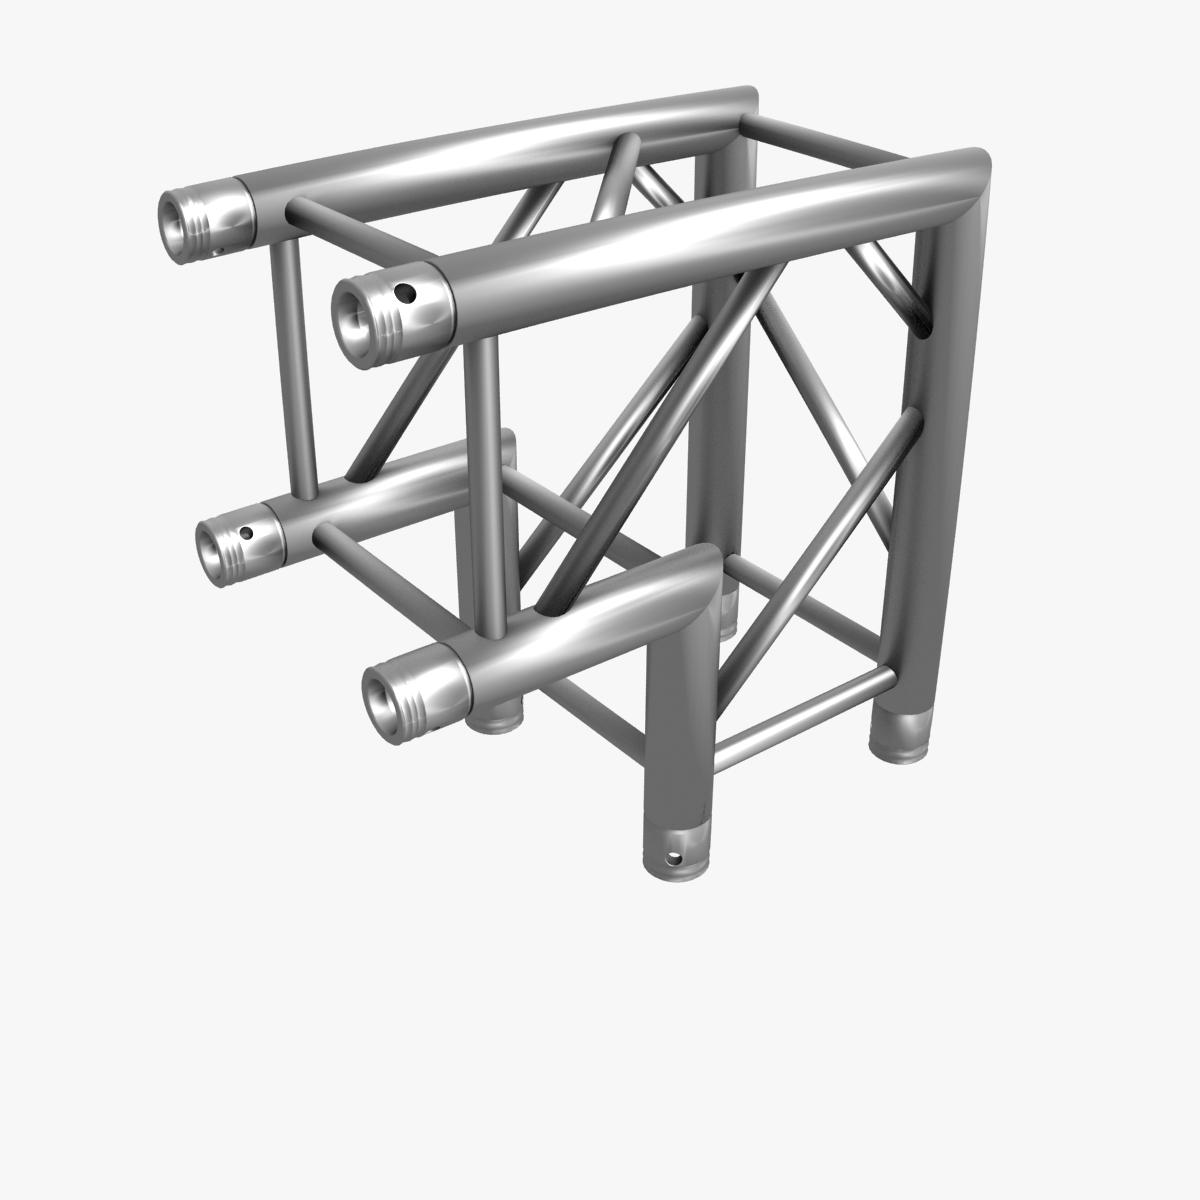 square truss standard (collection 24 modular) 3d model 3ds max dxf fbx c4d dae  texture obj 216358